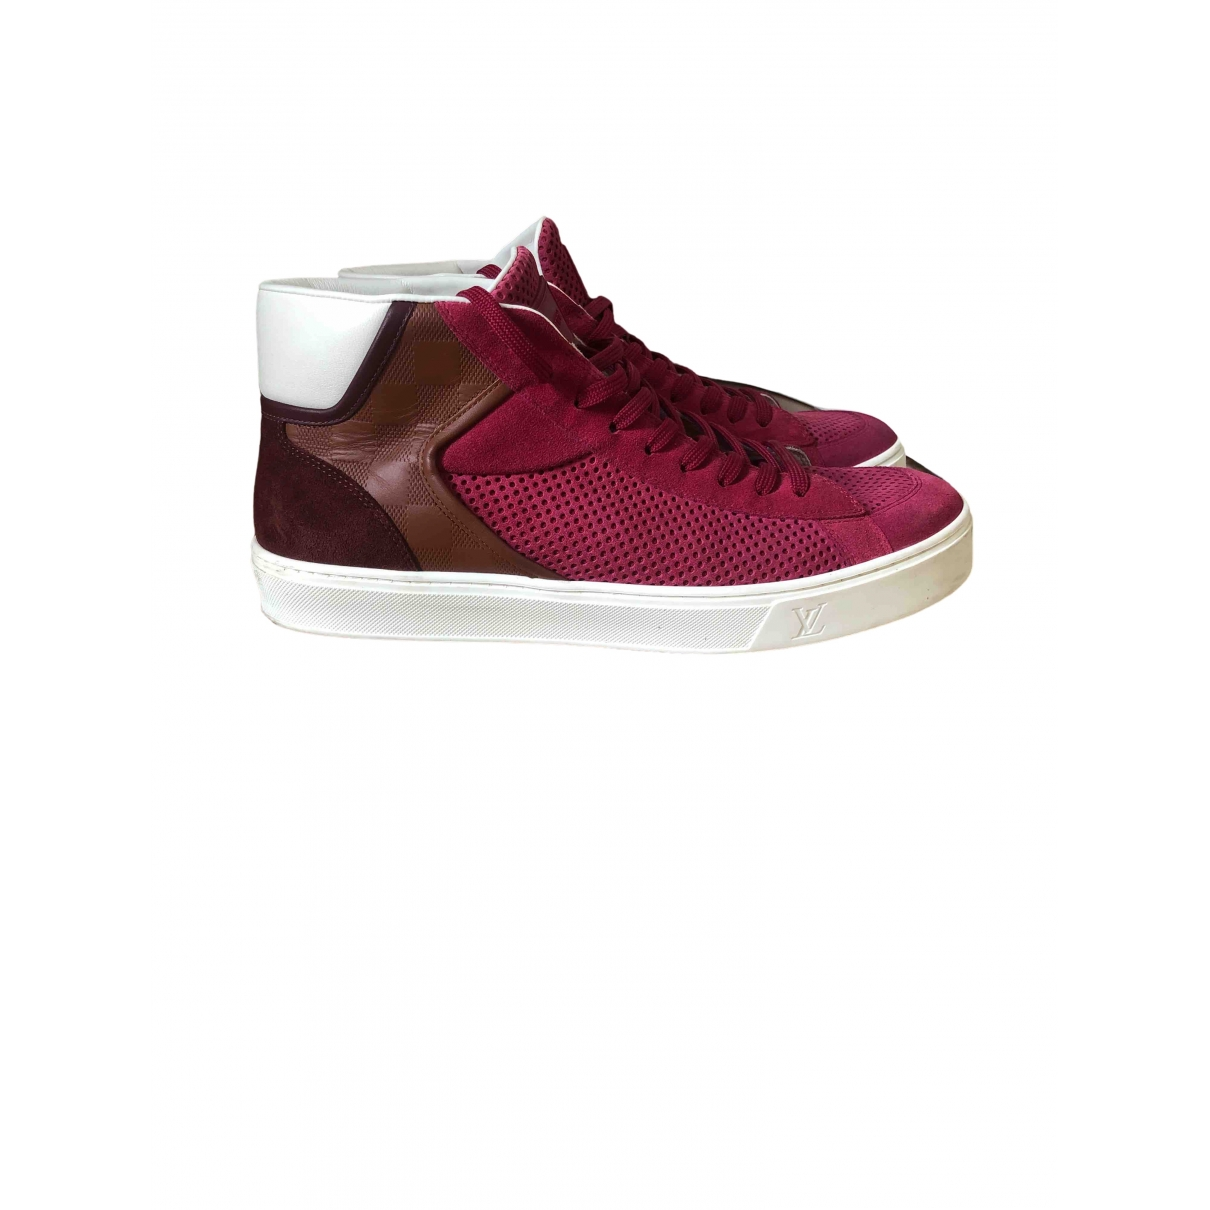 Louis Vuitton \N Burgundy Leather Trainers for Men 8 UK